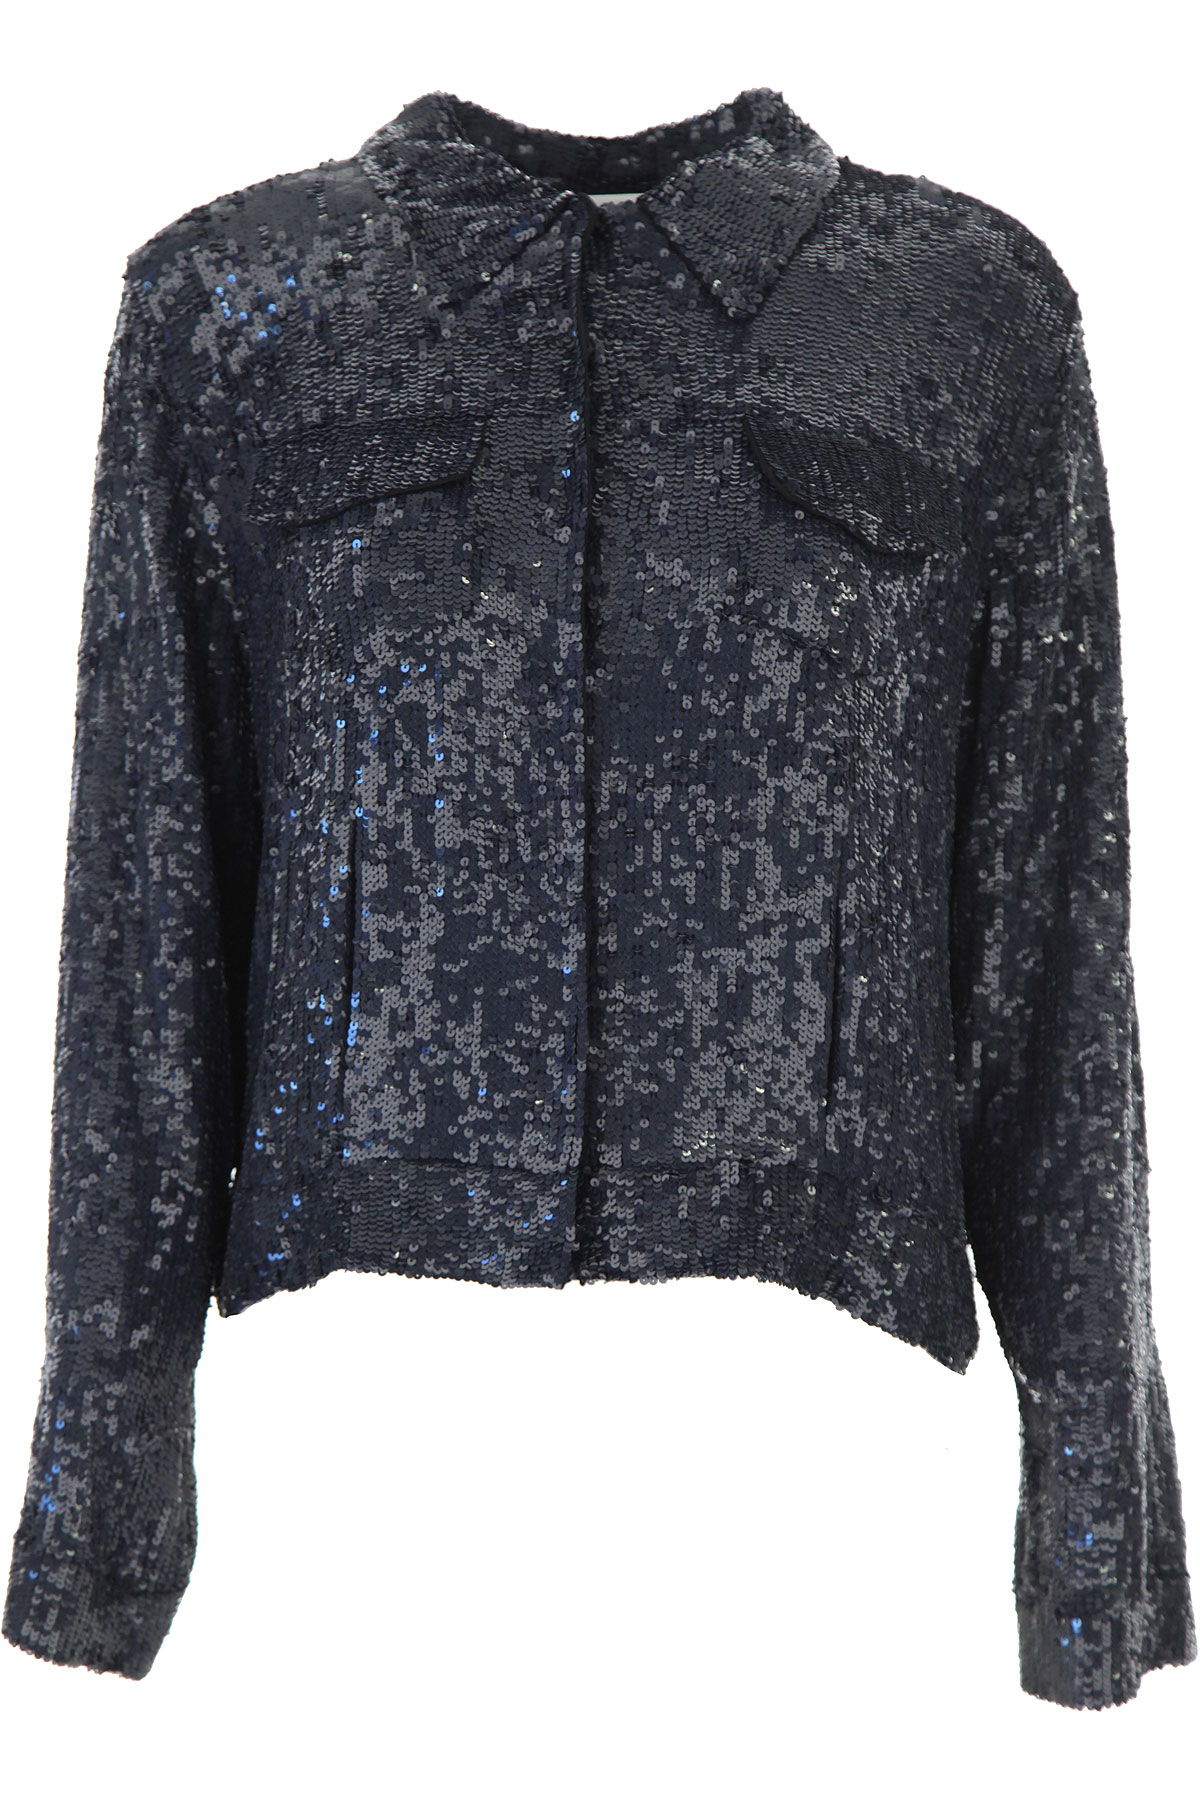 P.A.R.O.S.H. Jacket for Women On Sale, Midnight Blue, Viscose, 2019, 6 8